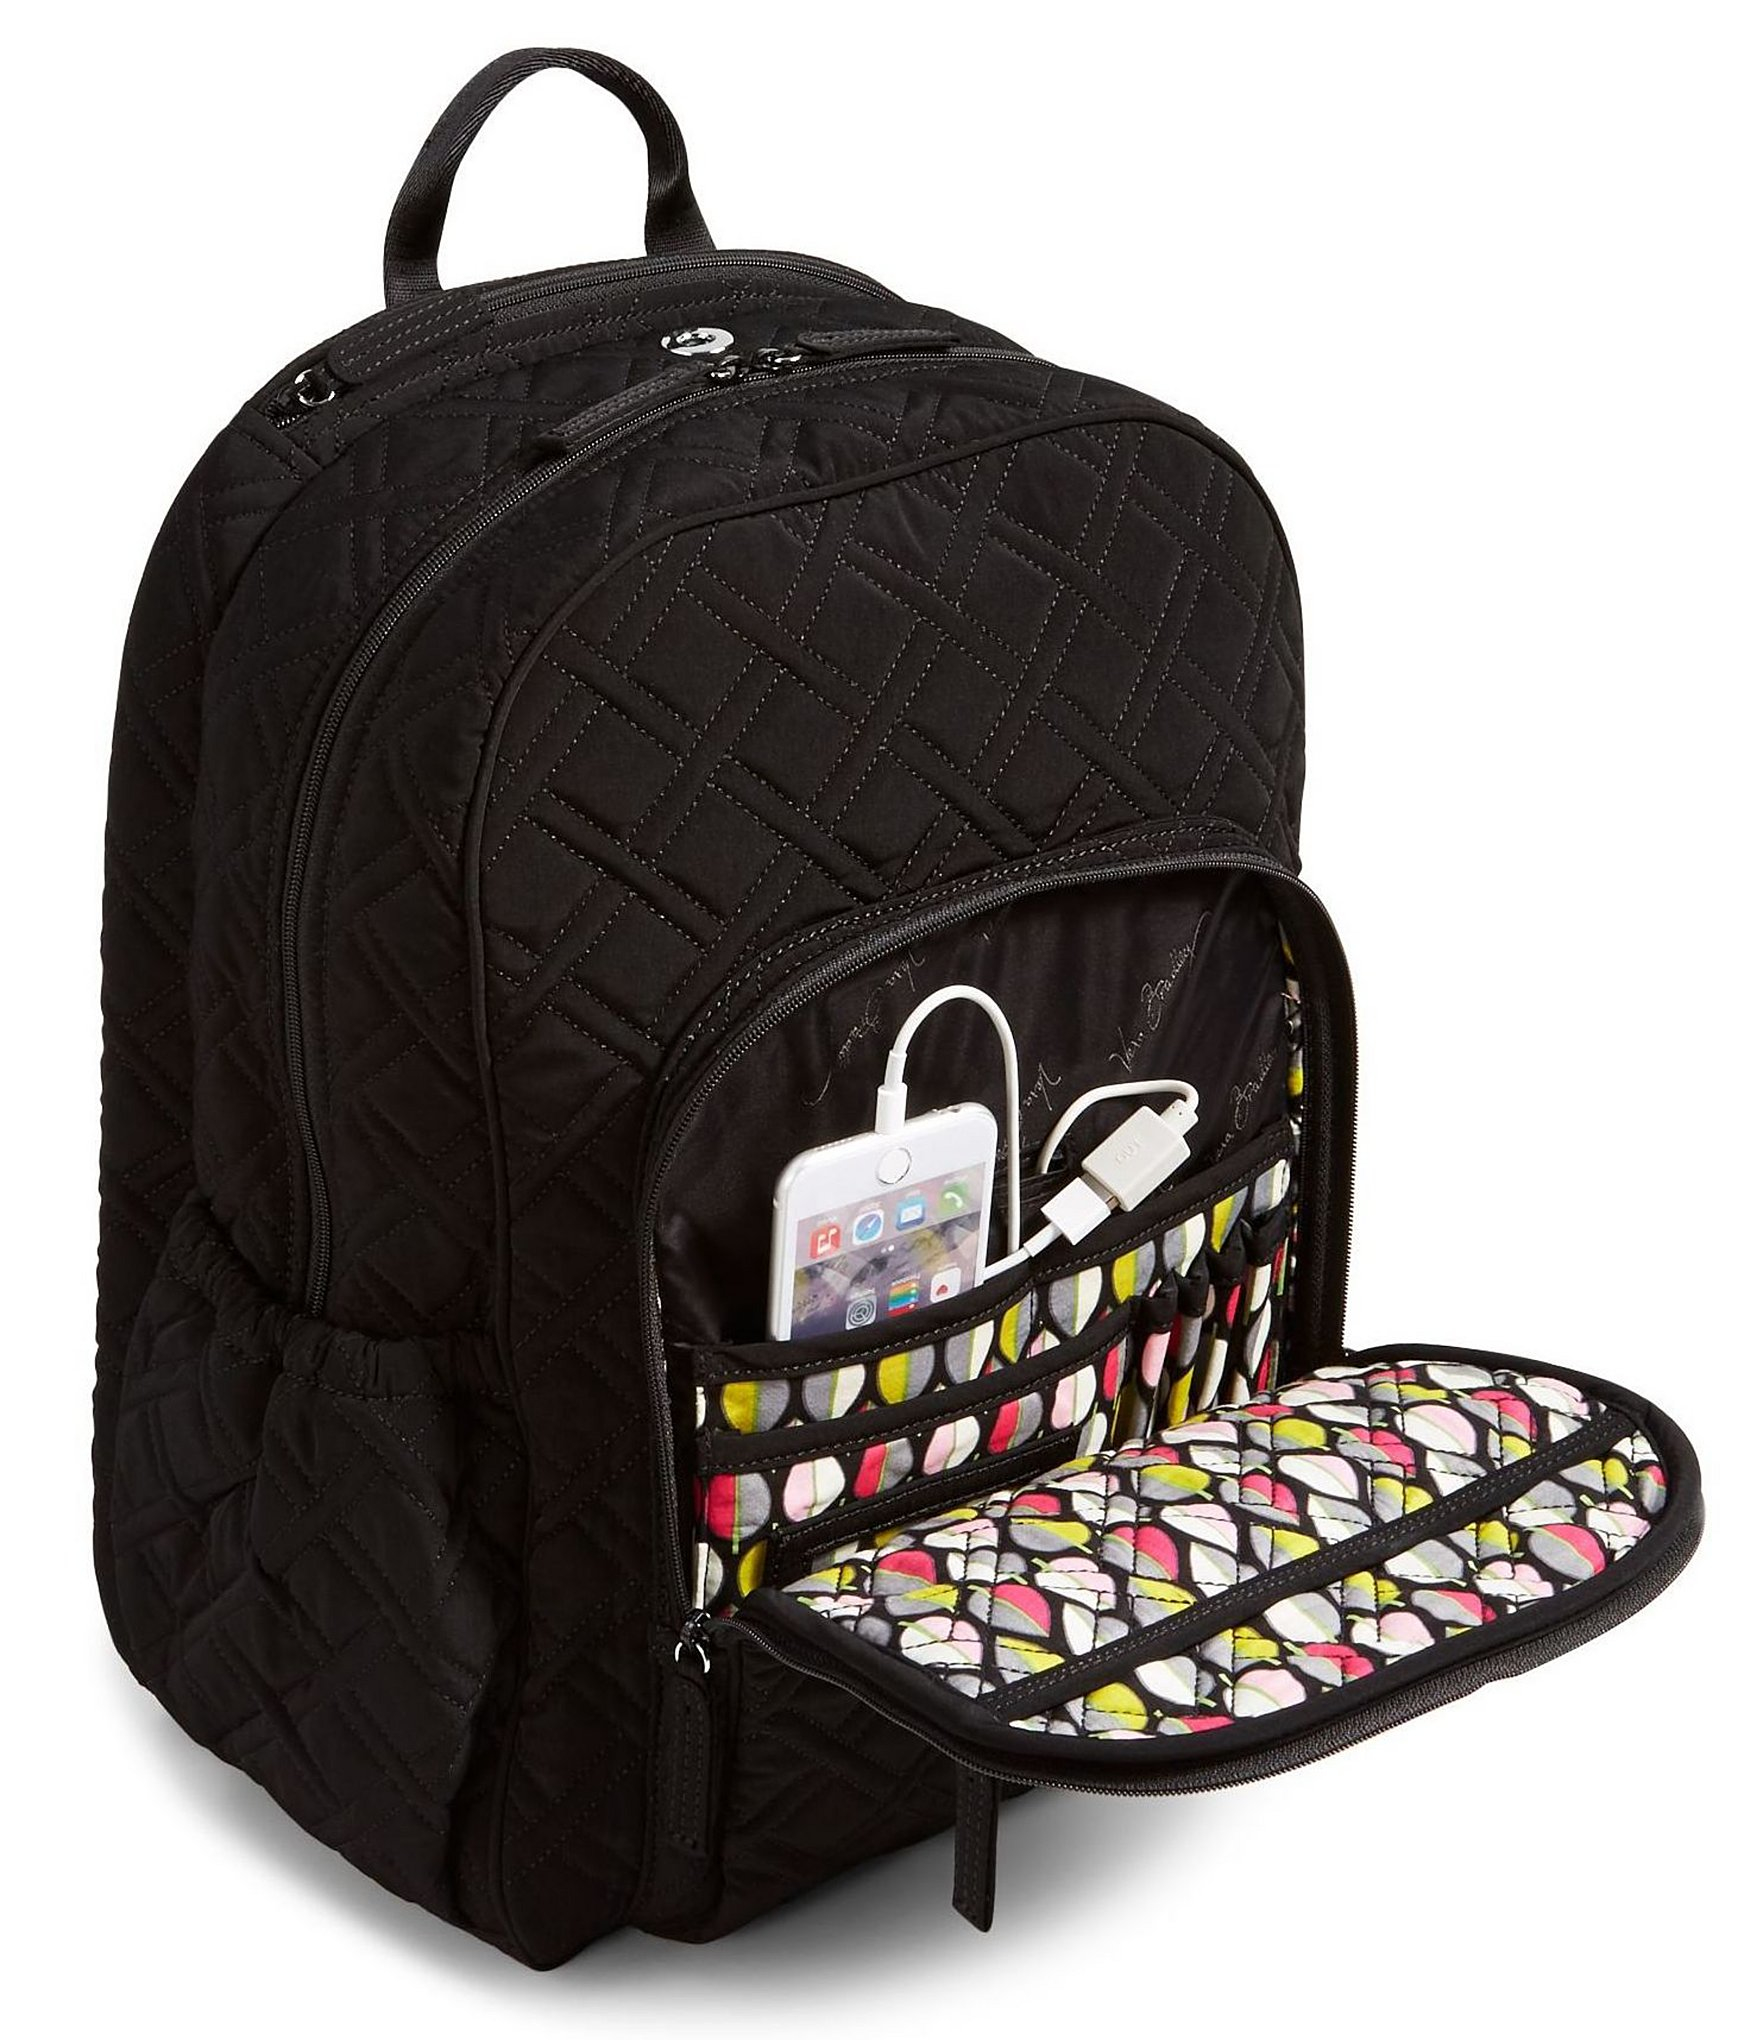 57923a6d68 Lyst - Vera Bradley Keep Charged Campus Tech Laptop Backpack in Black